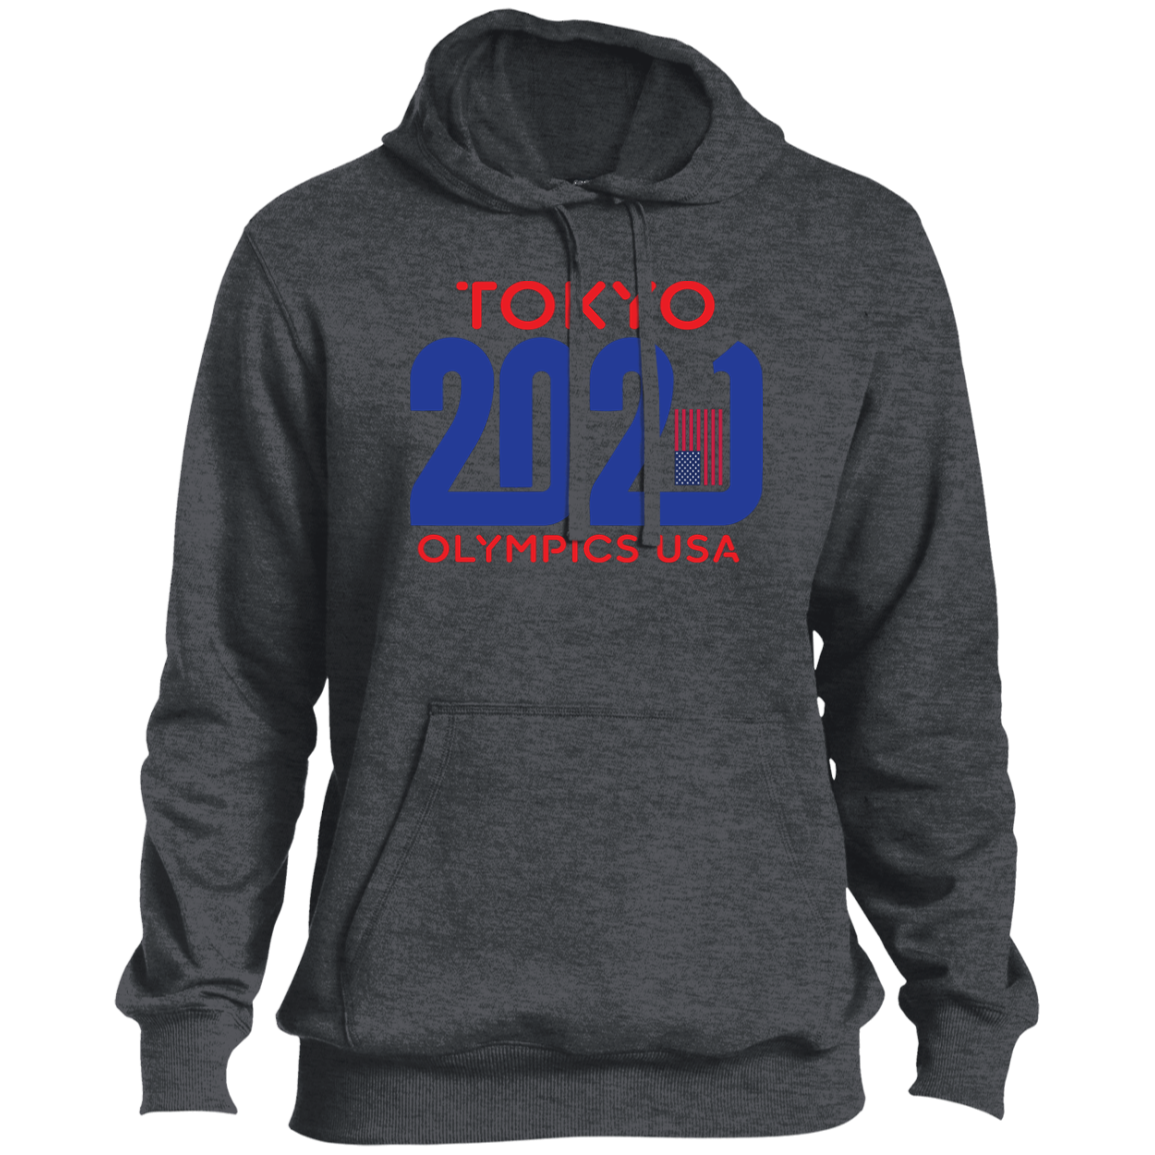 Mens Tokyo 2021 Olympics USA Tall Pullover Hoodie